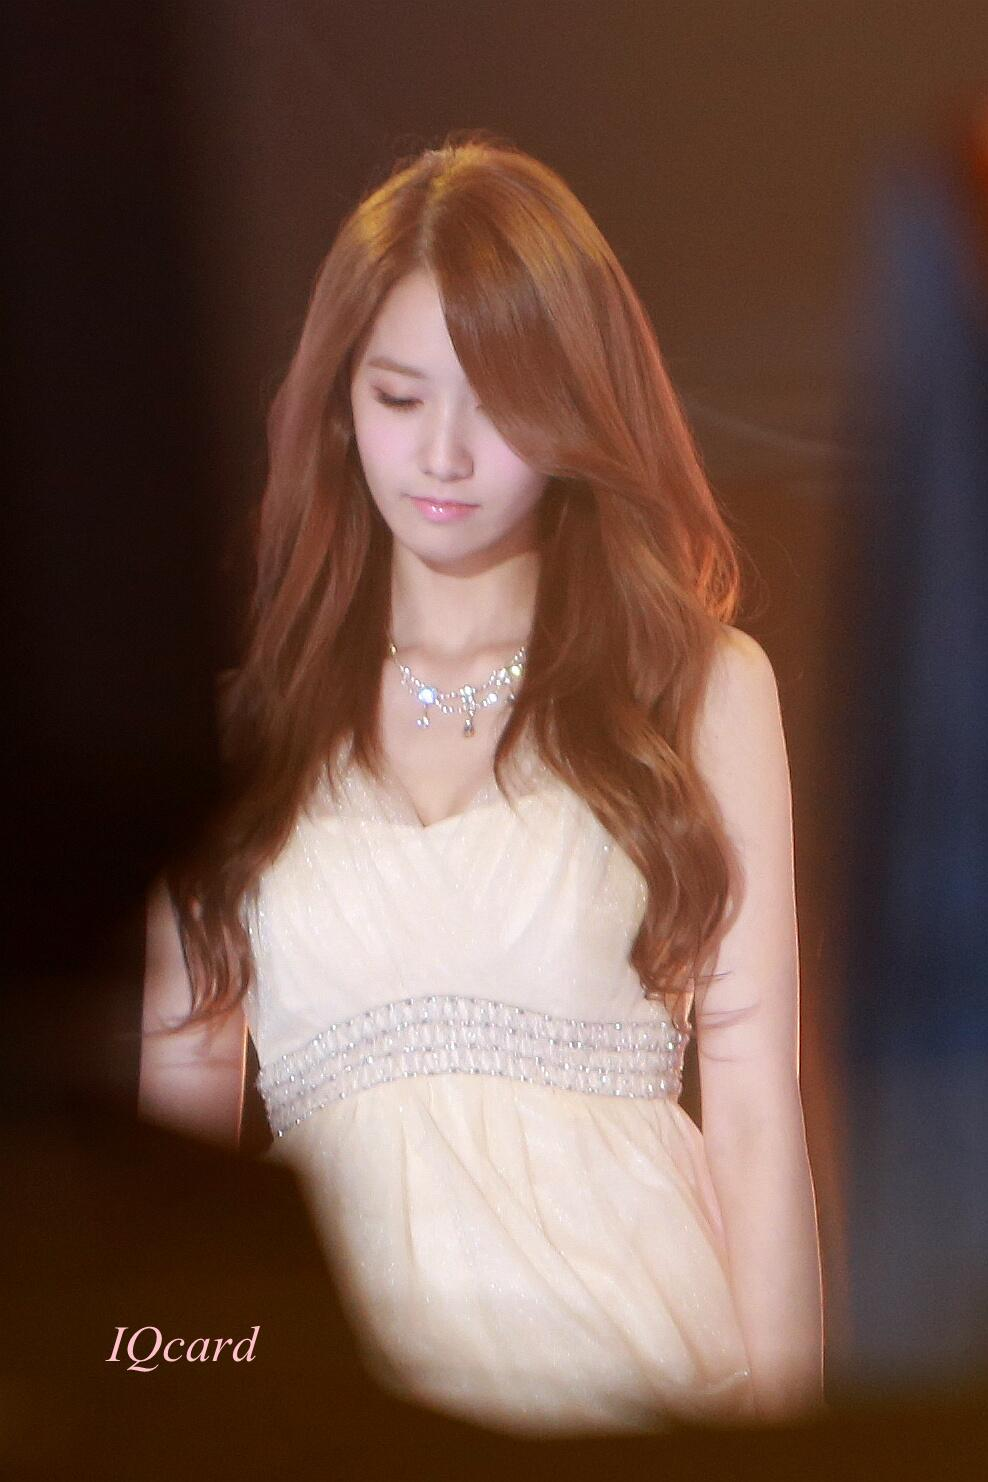 im sorry yoona , i love taeyeon. T.T you're too cute. RT @SMSNSDcom: [PIC] 130628 Yoona- KCMF by IQcard http://t.co/247EvPqtvk